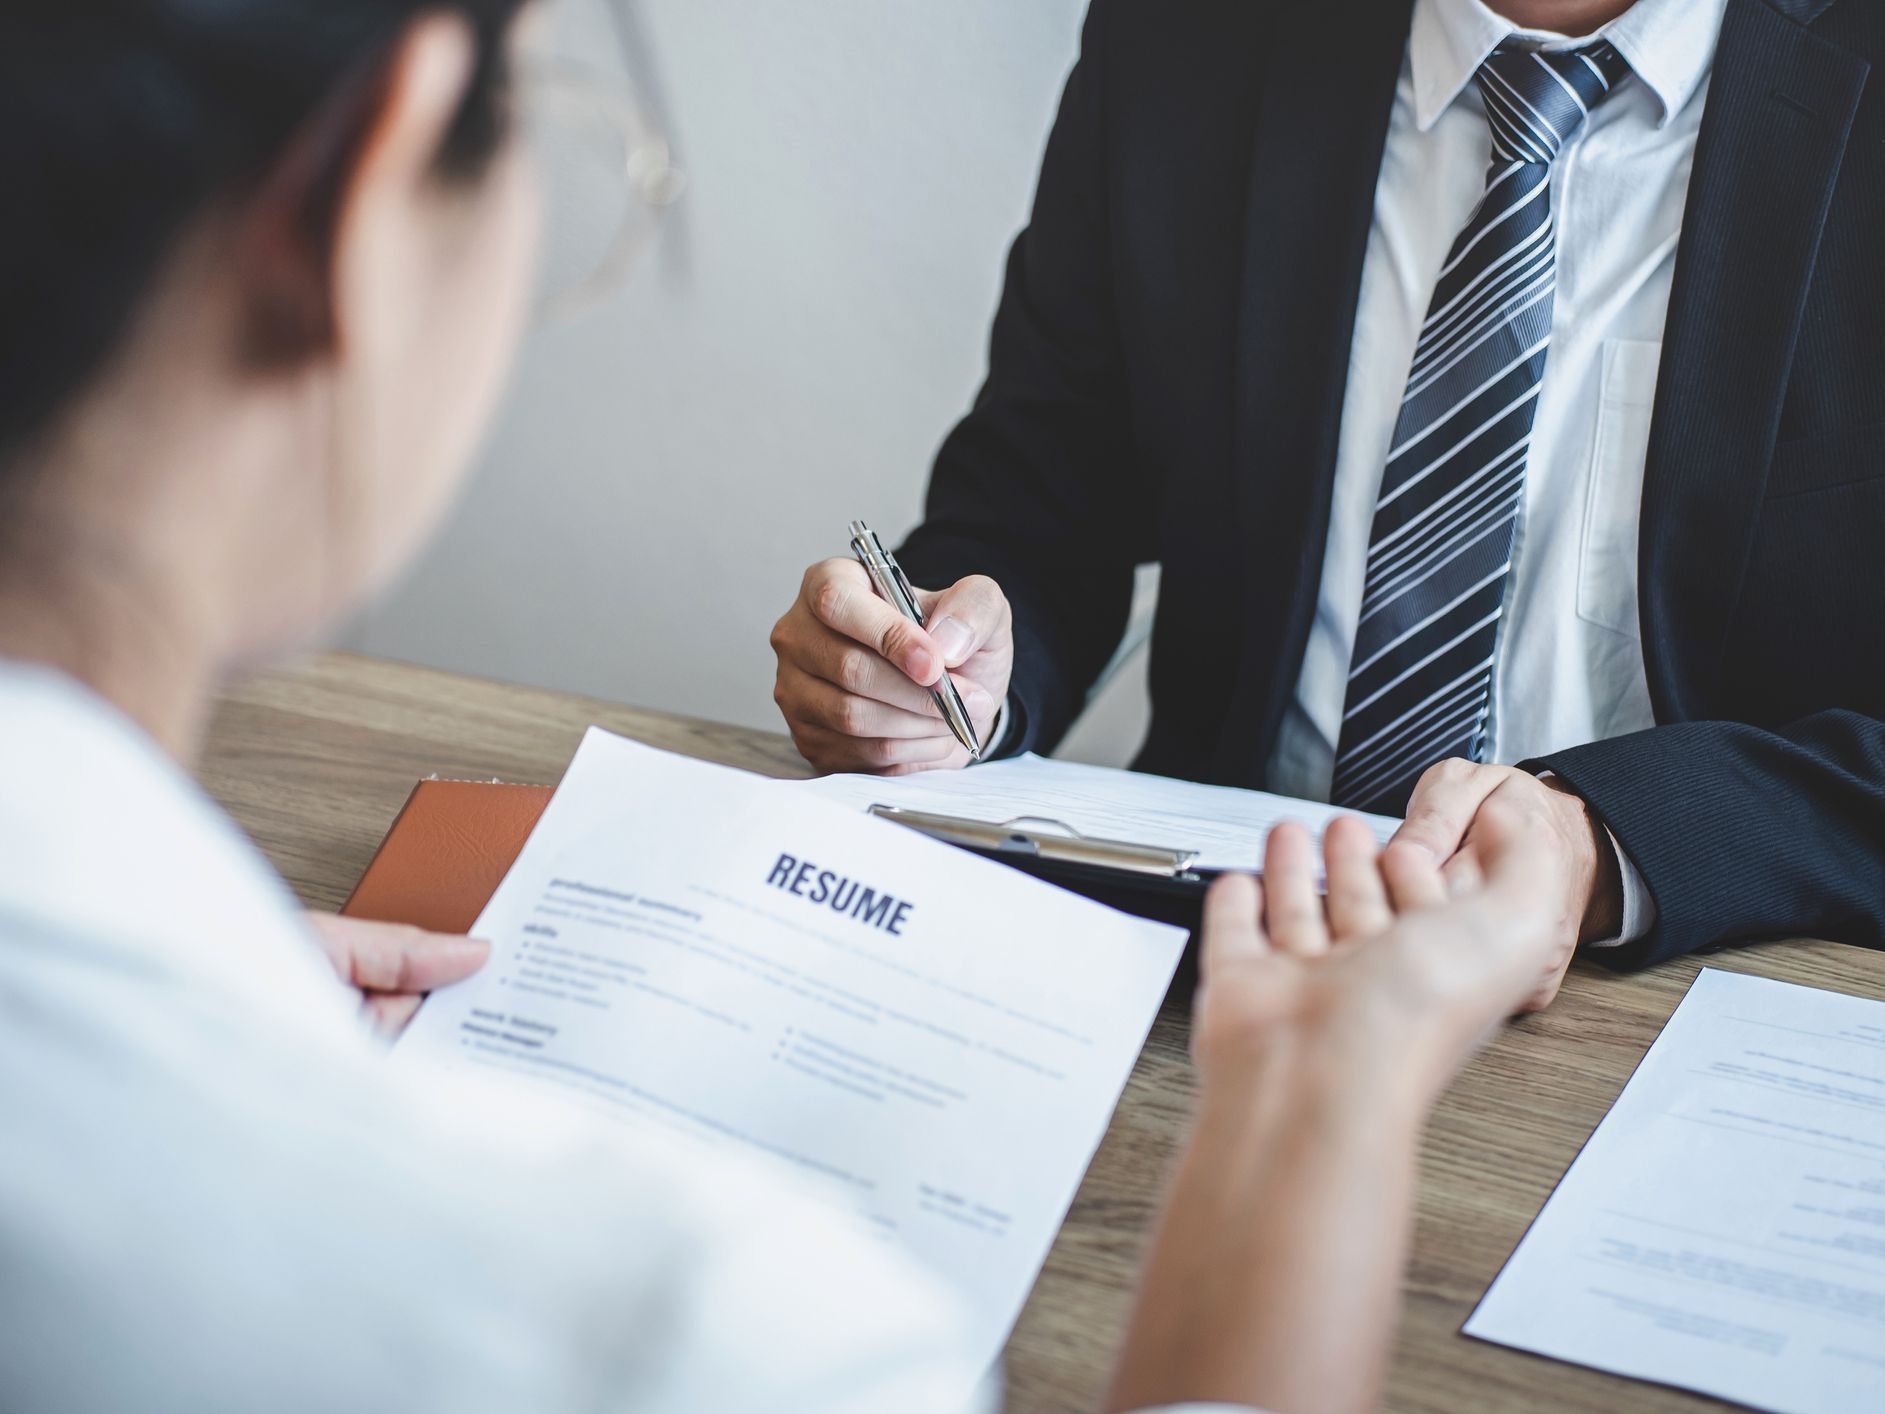 The 8 Best Executive Resume Writing Services of 2021